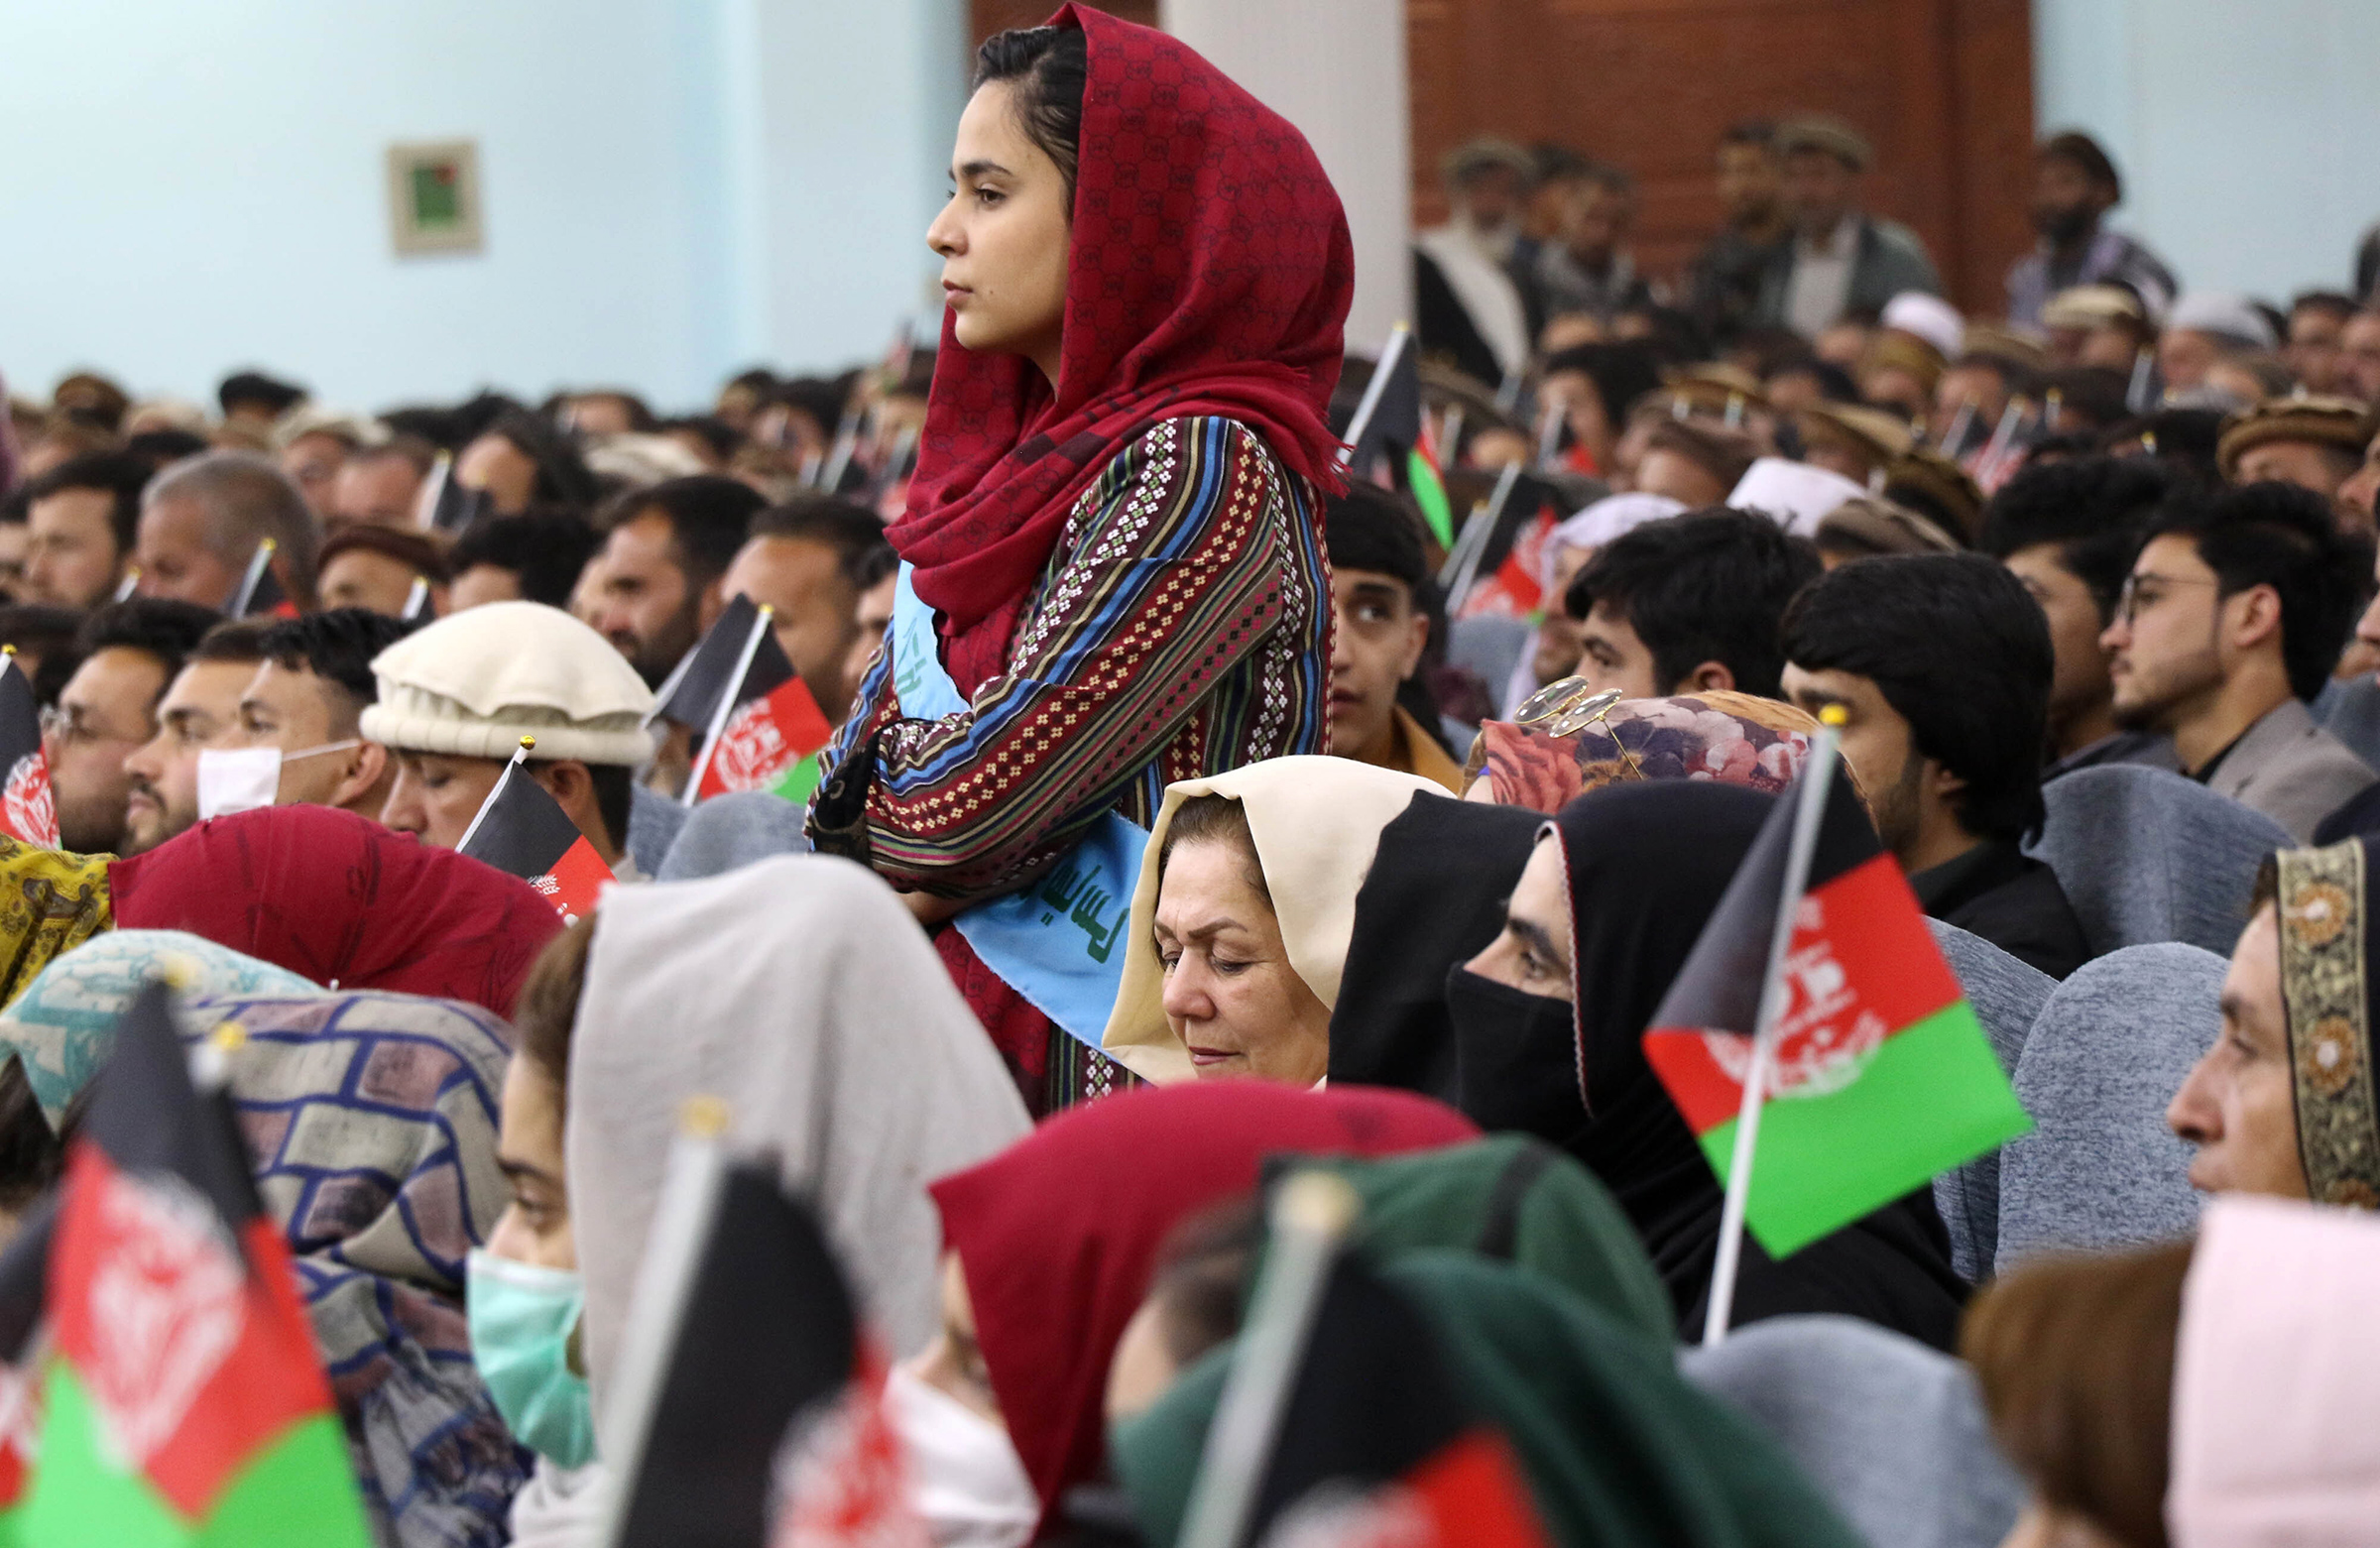 Afghan women, youths, activists and elders gather at a rally to support peace talks and the republic government in Kabul, Afghanistan, on March 29, 2021. According to the reports, Turkey will host the Afghanistan peace-talks summit in the upcoming days.